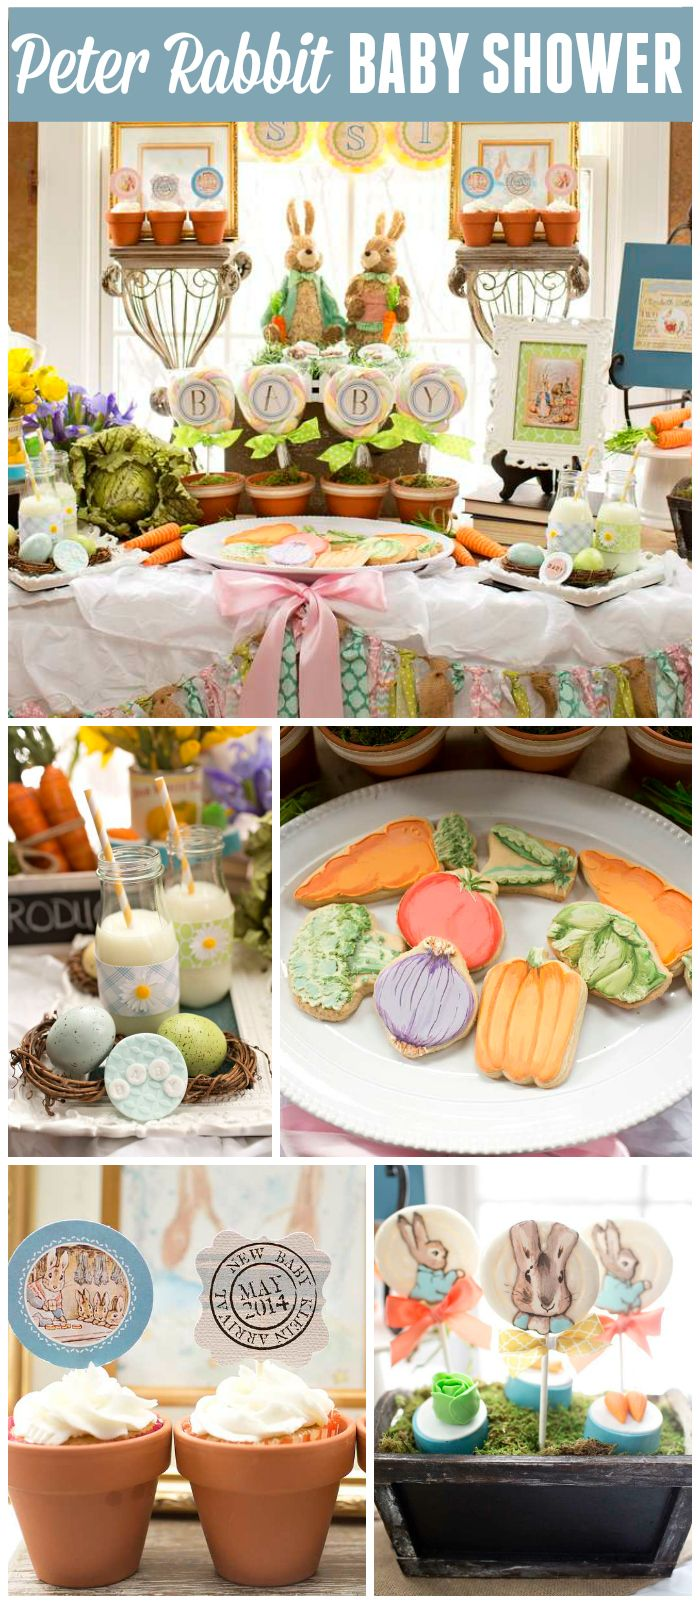 An incredible Peter Rabbit themed baby shower with cupcakes and lollipops in terra cotta pots! See more party planning ideas at CatchMyParty.com!